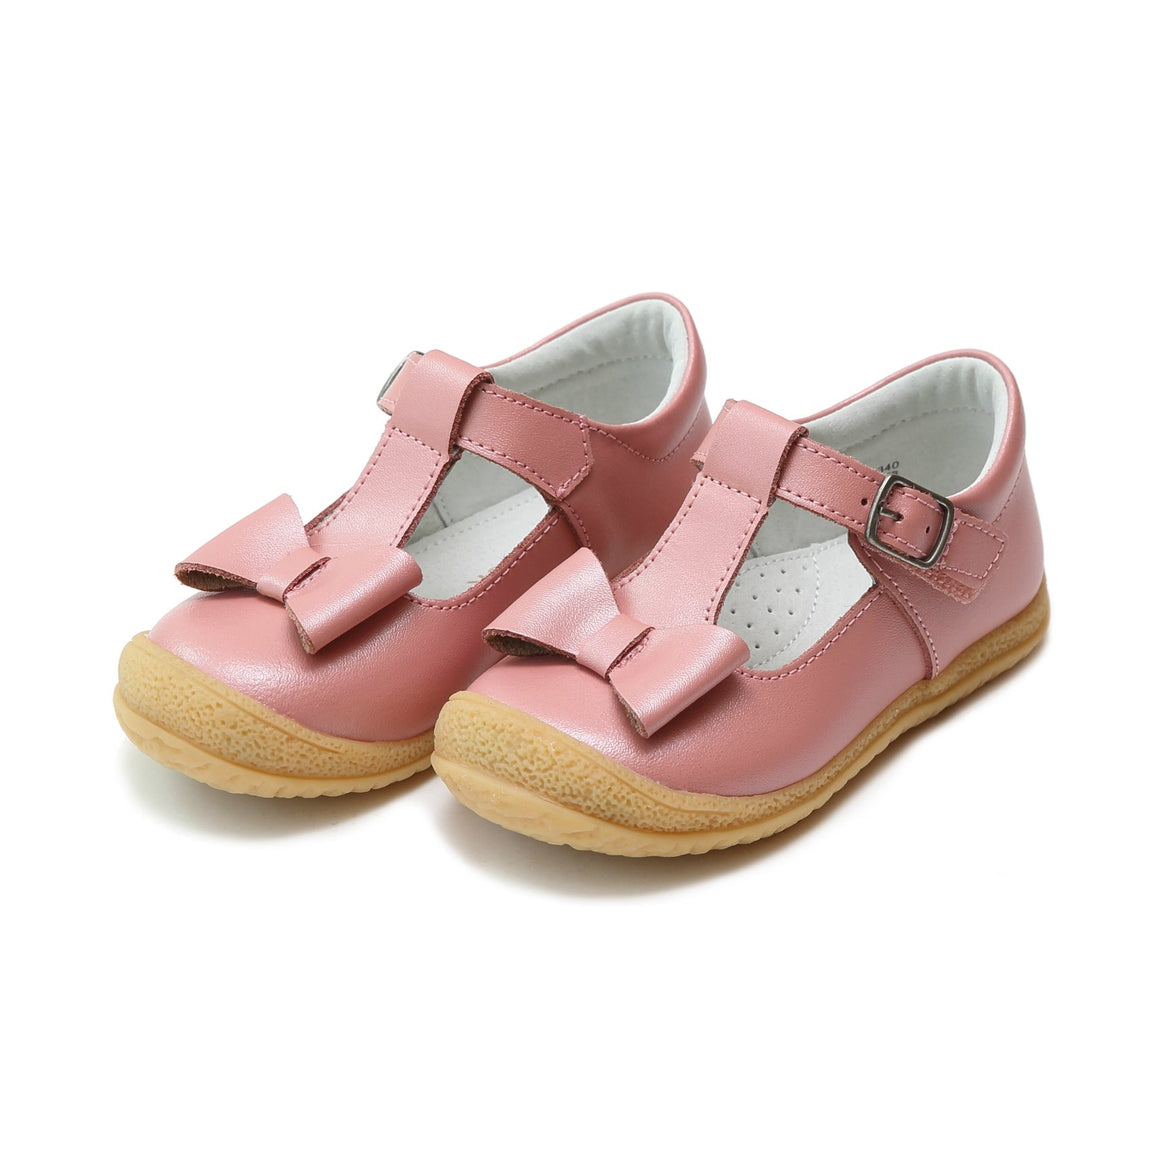 girls shimmer rose emma bow leather mary jane shoes from L'Amour, available at Threadfare Children's Boutique